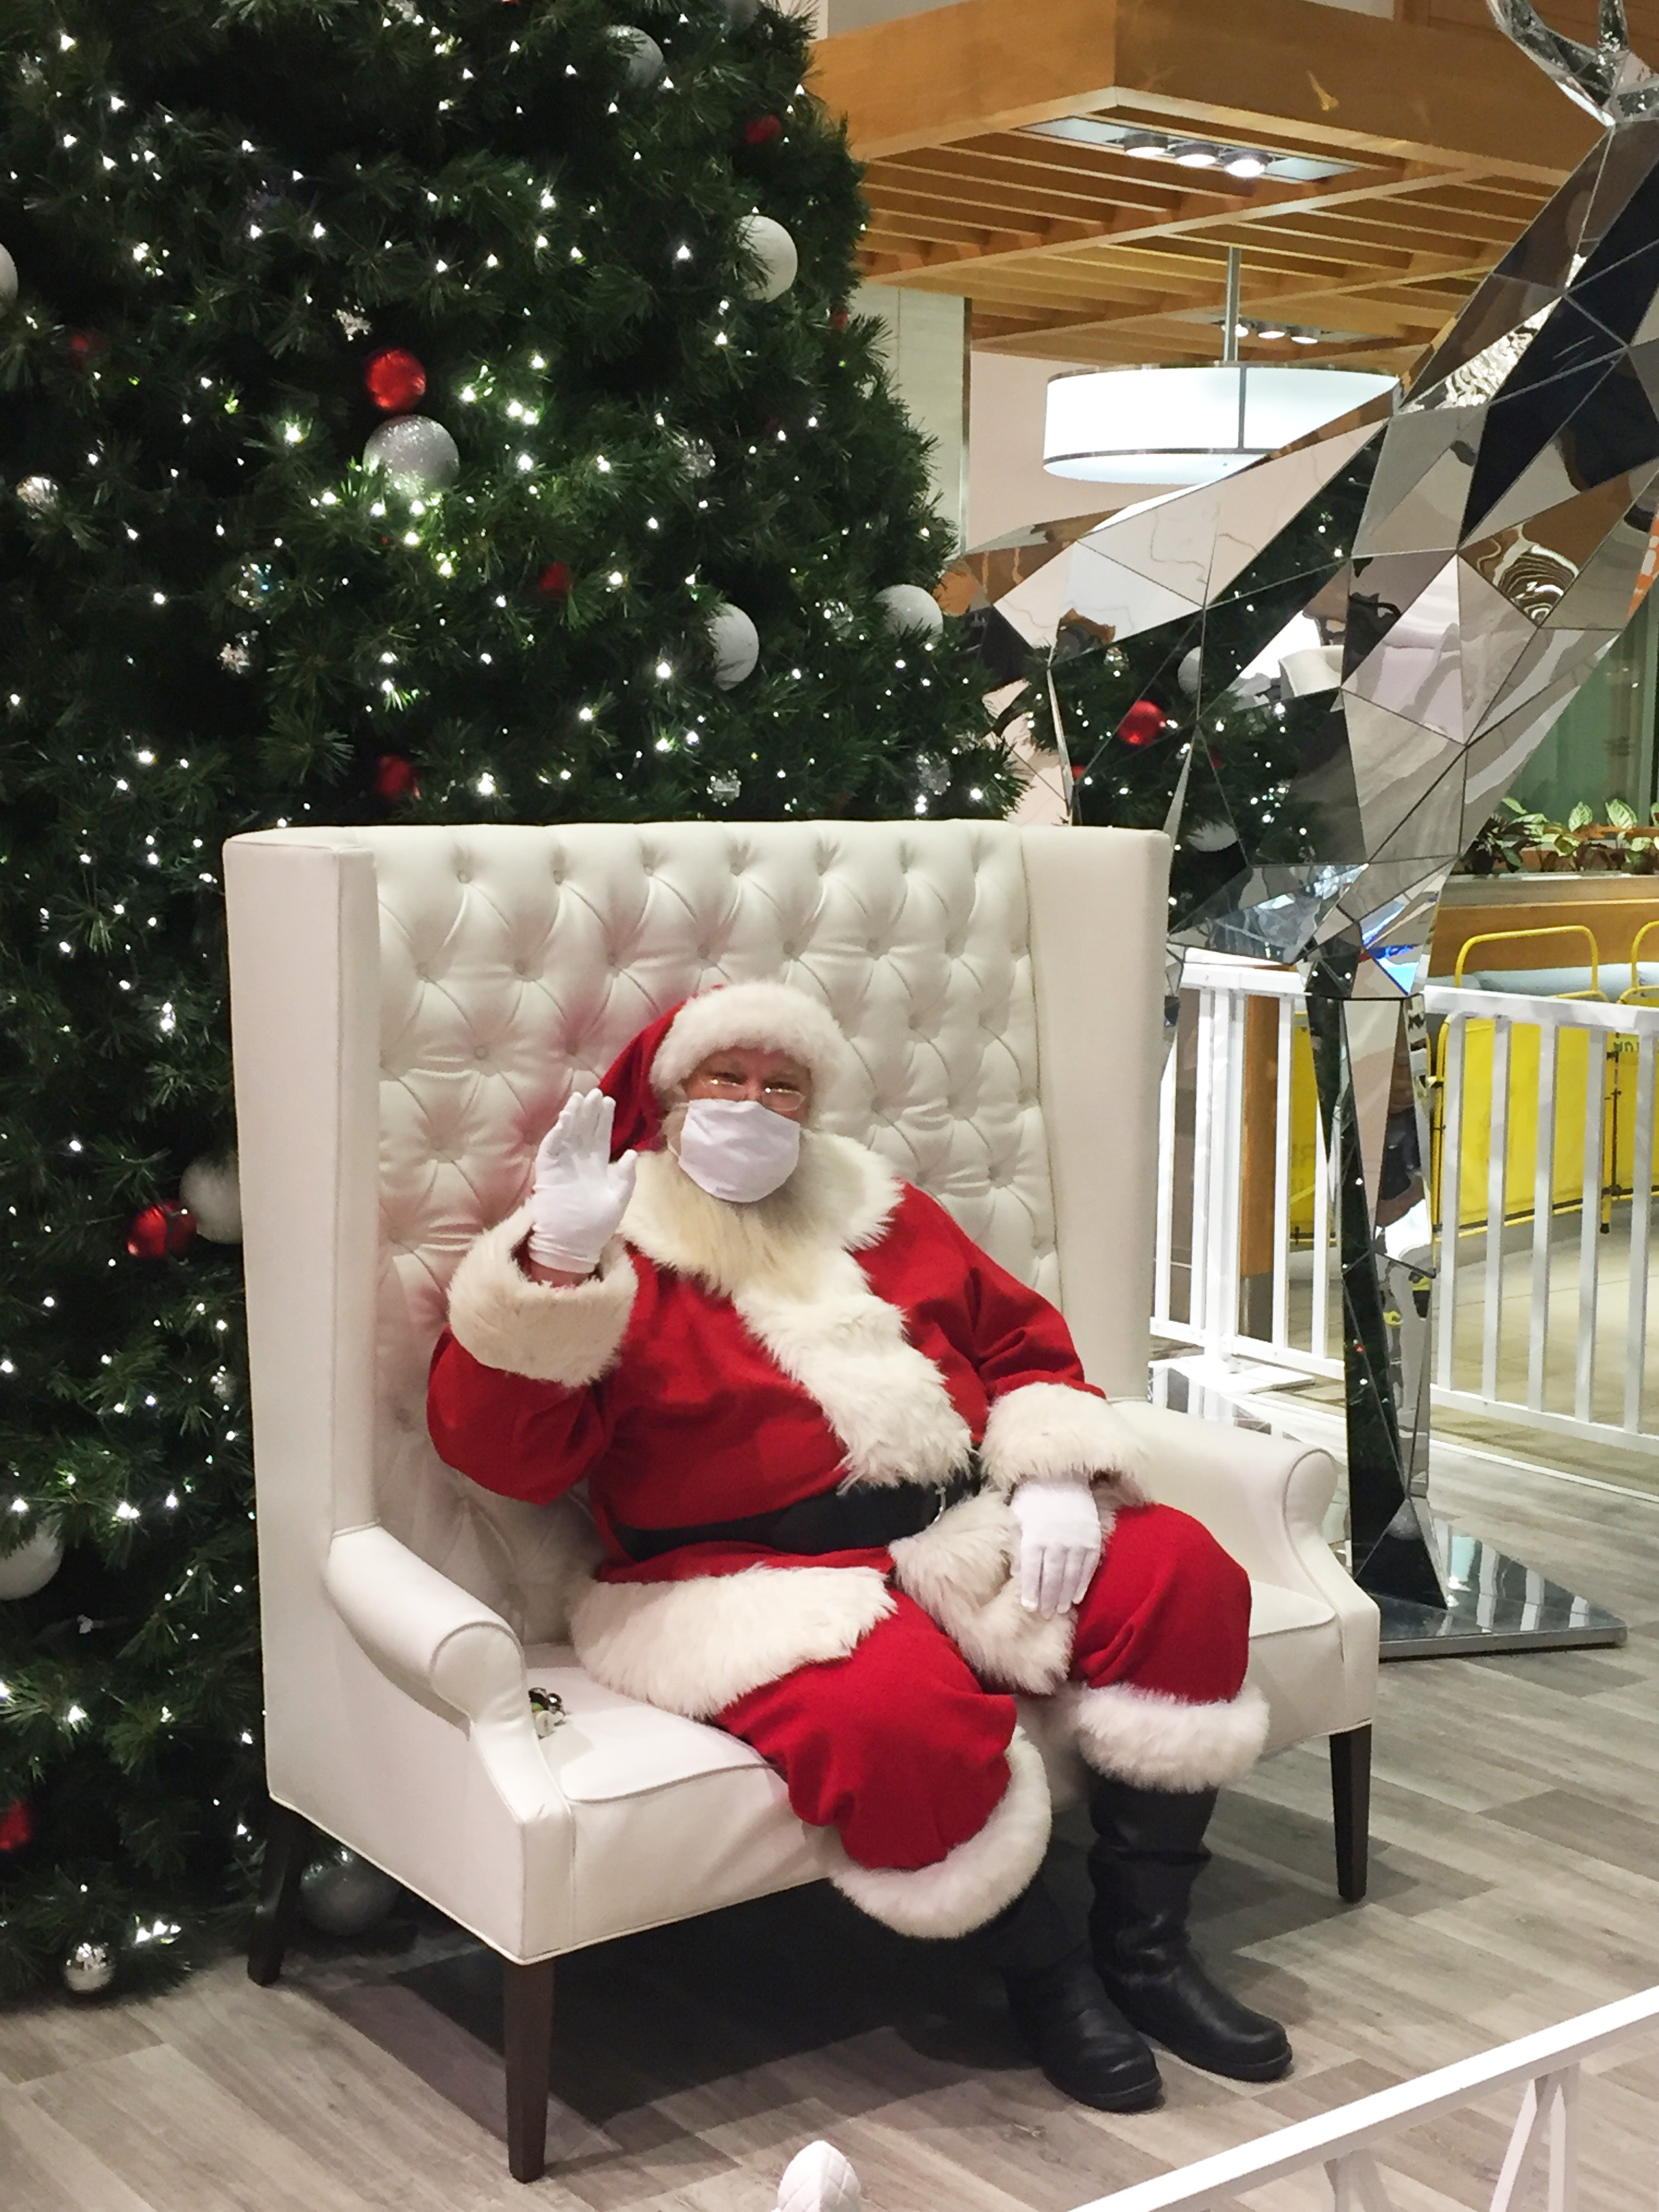 Christmas During The COVID-19 Pandemic In Canada